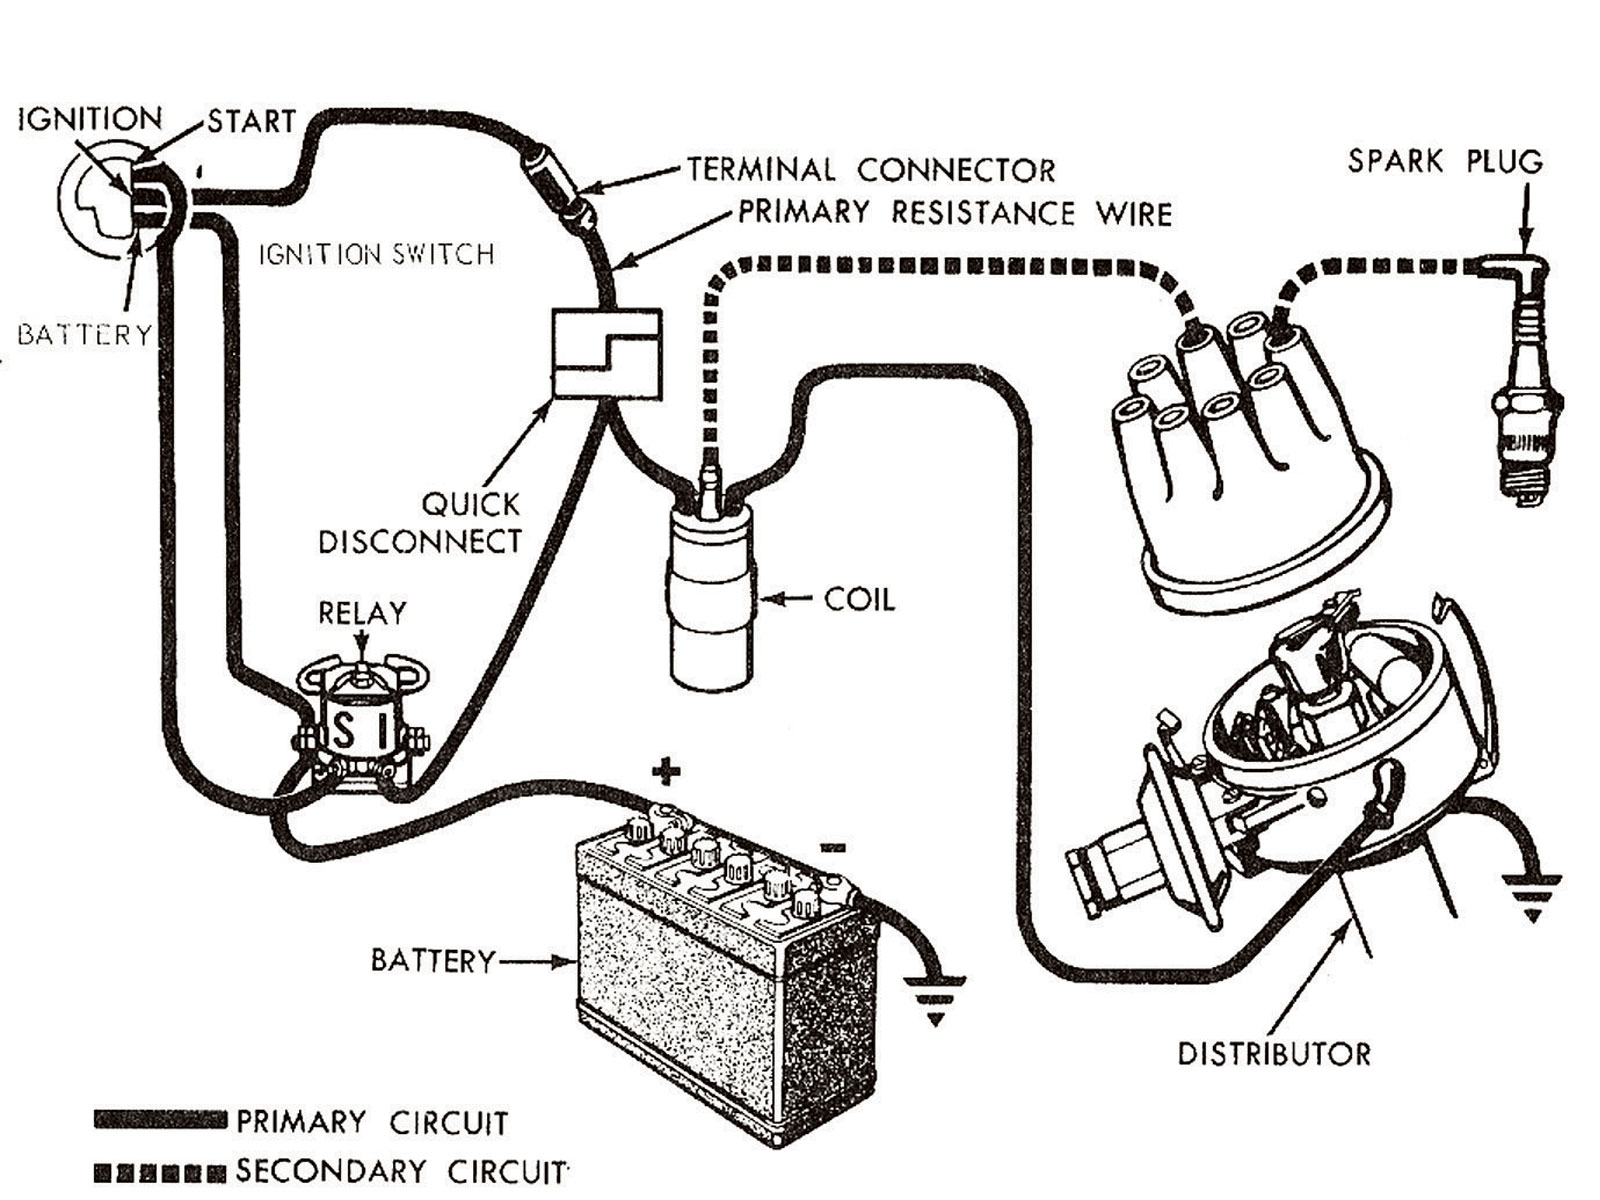 1973 ford f100 ignition switch diagram